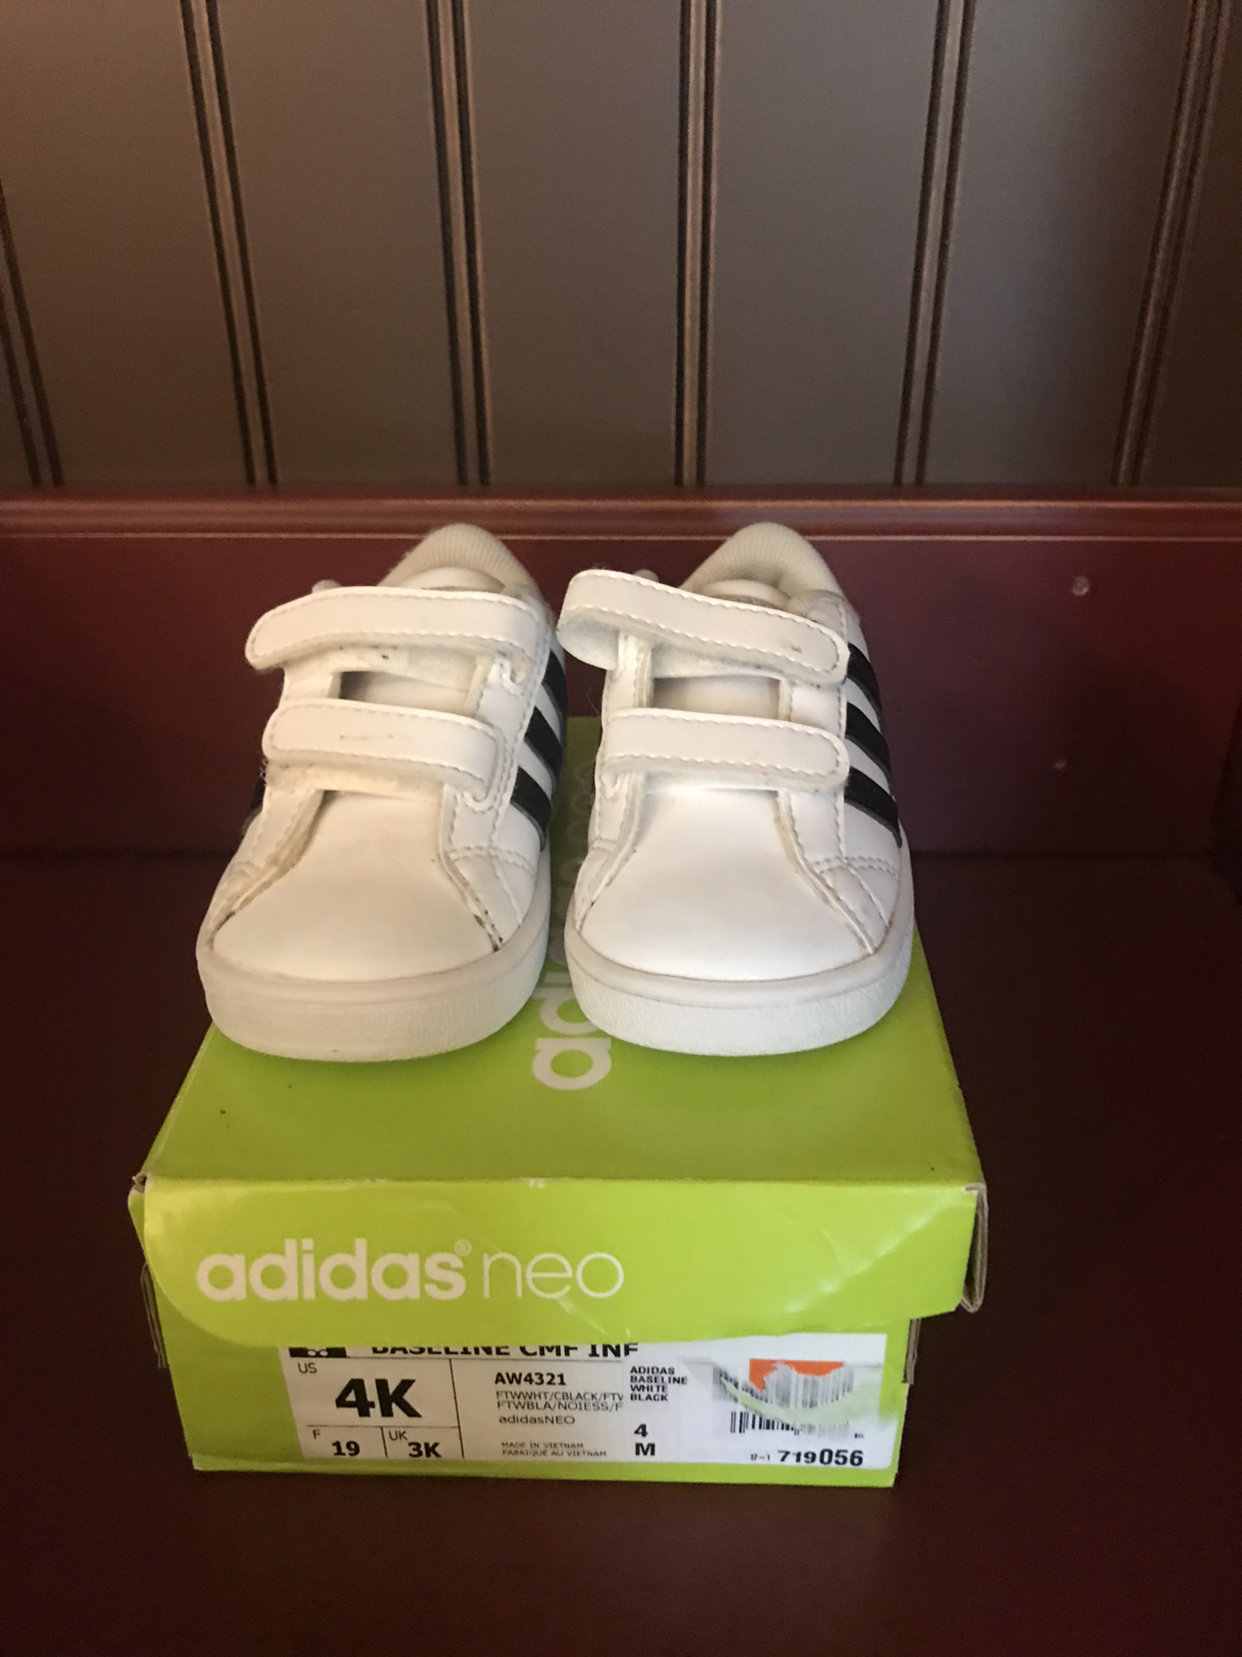 Adidas Neo Baby Shoes